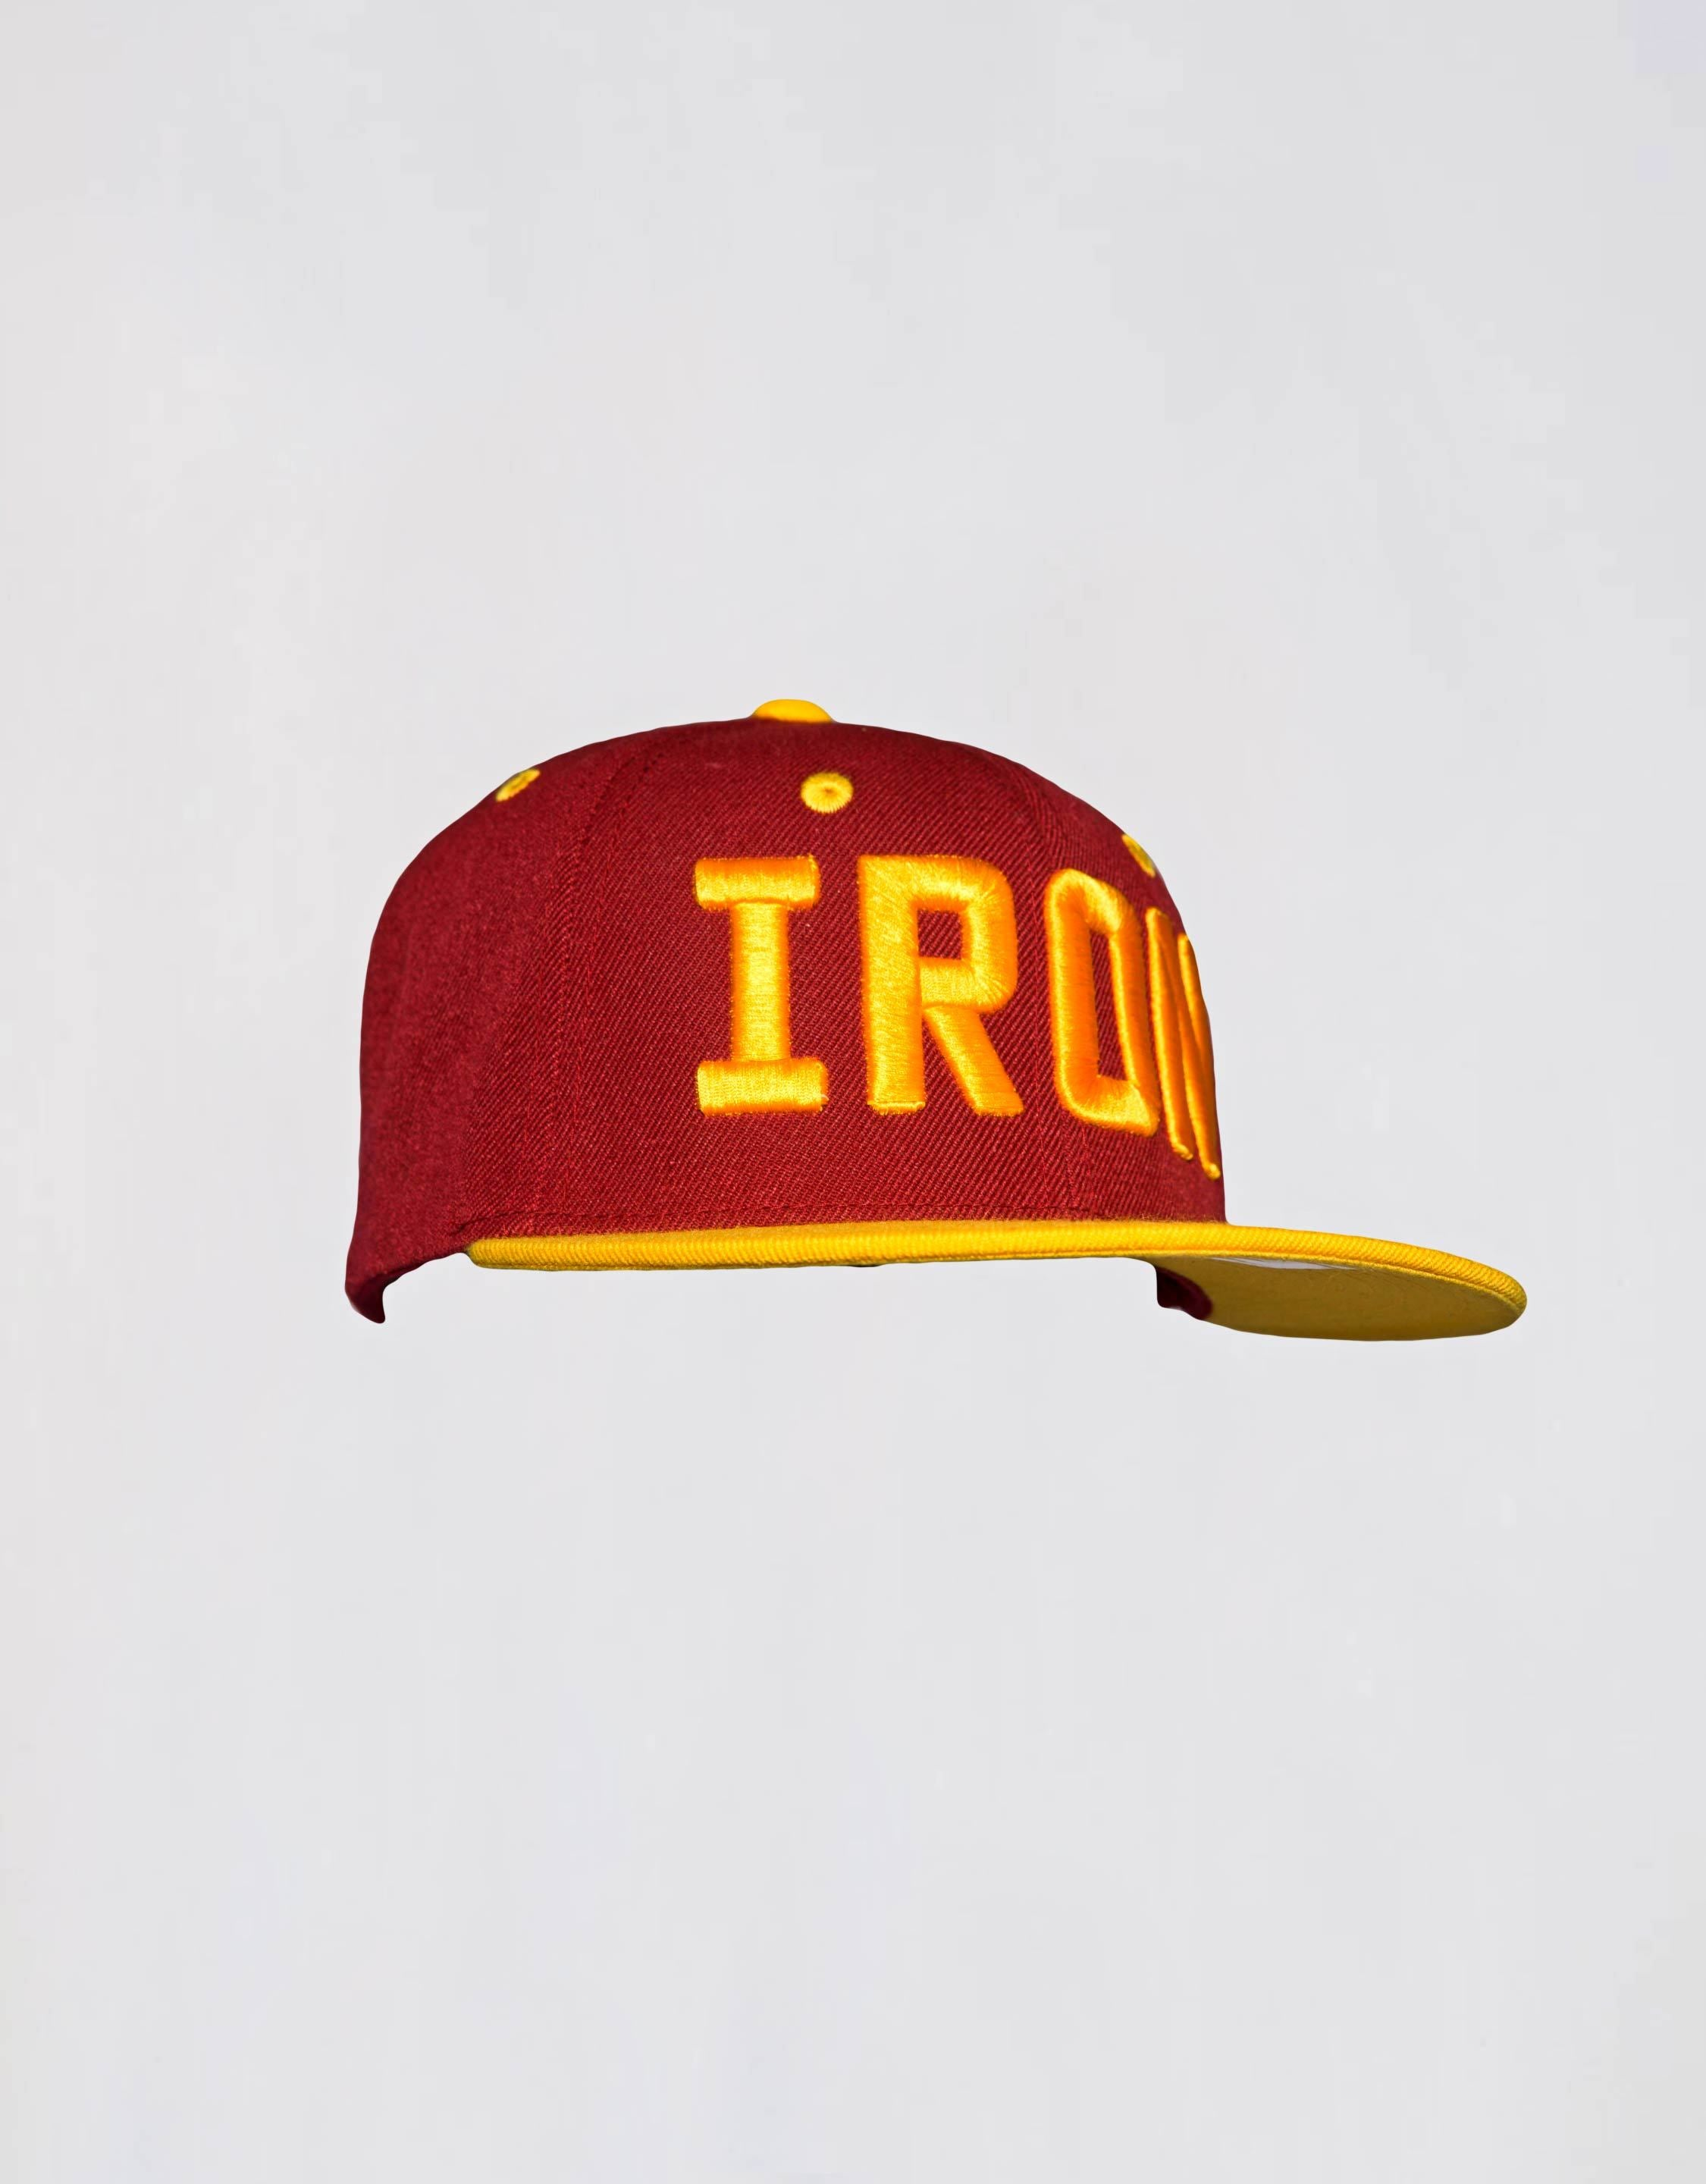 Iron Snapback - Red/yellow - Hat